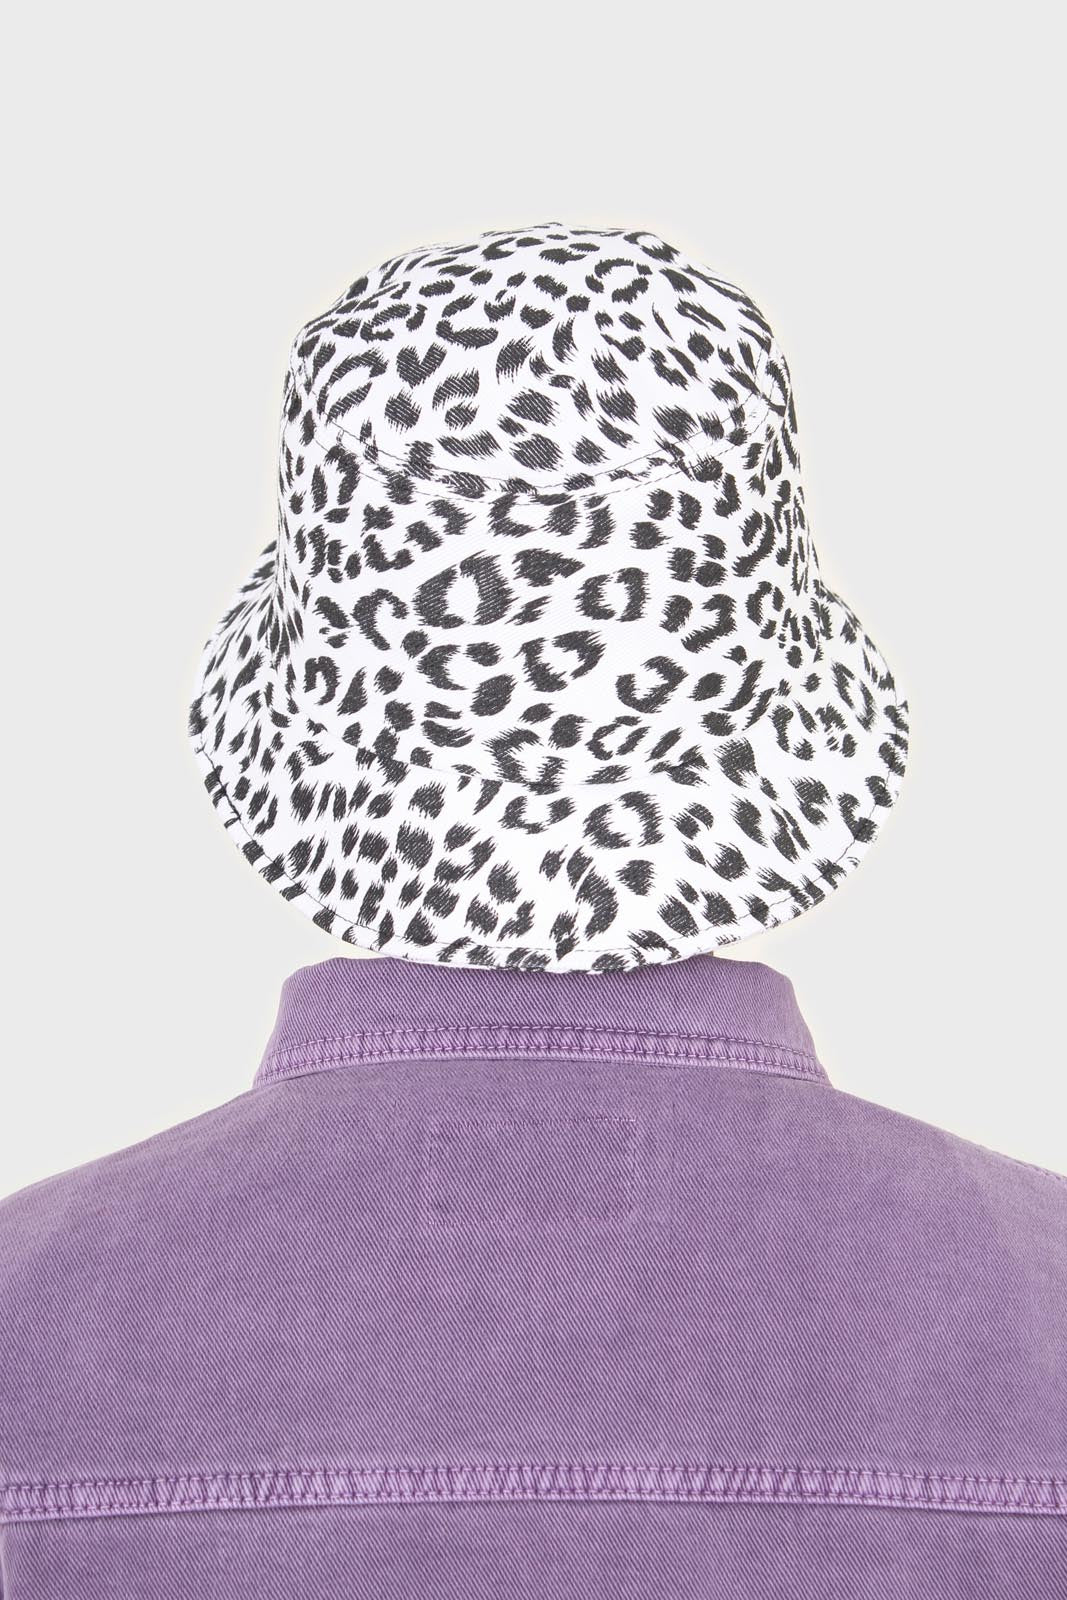 Ivory and black leopard print bucket hat3